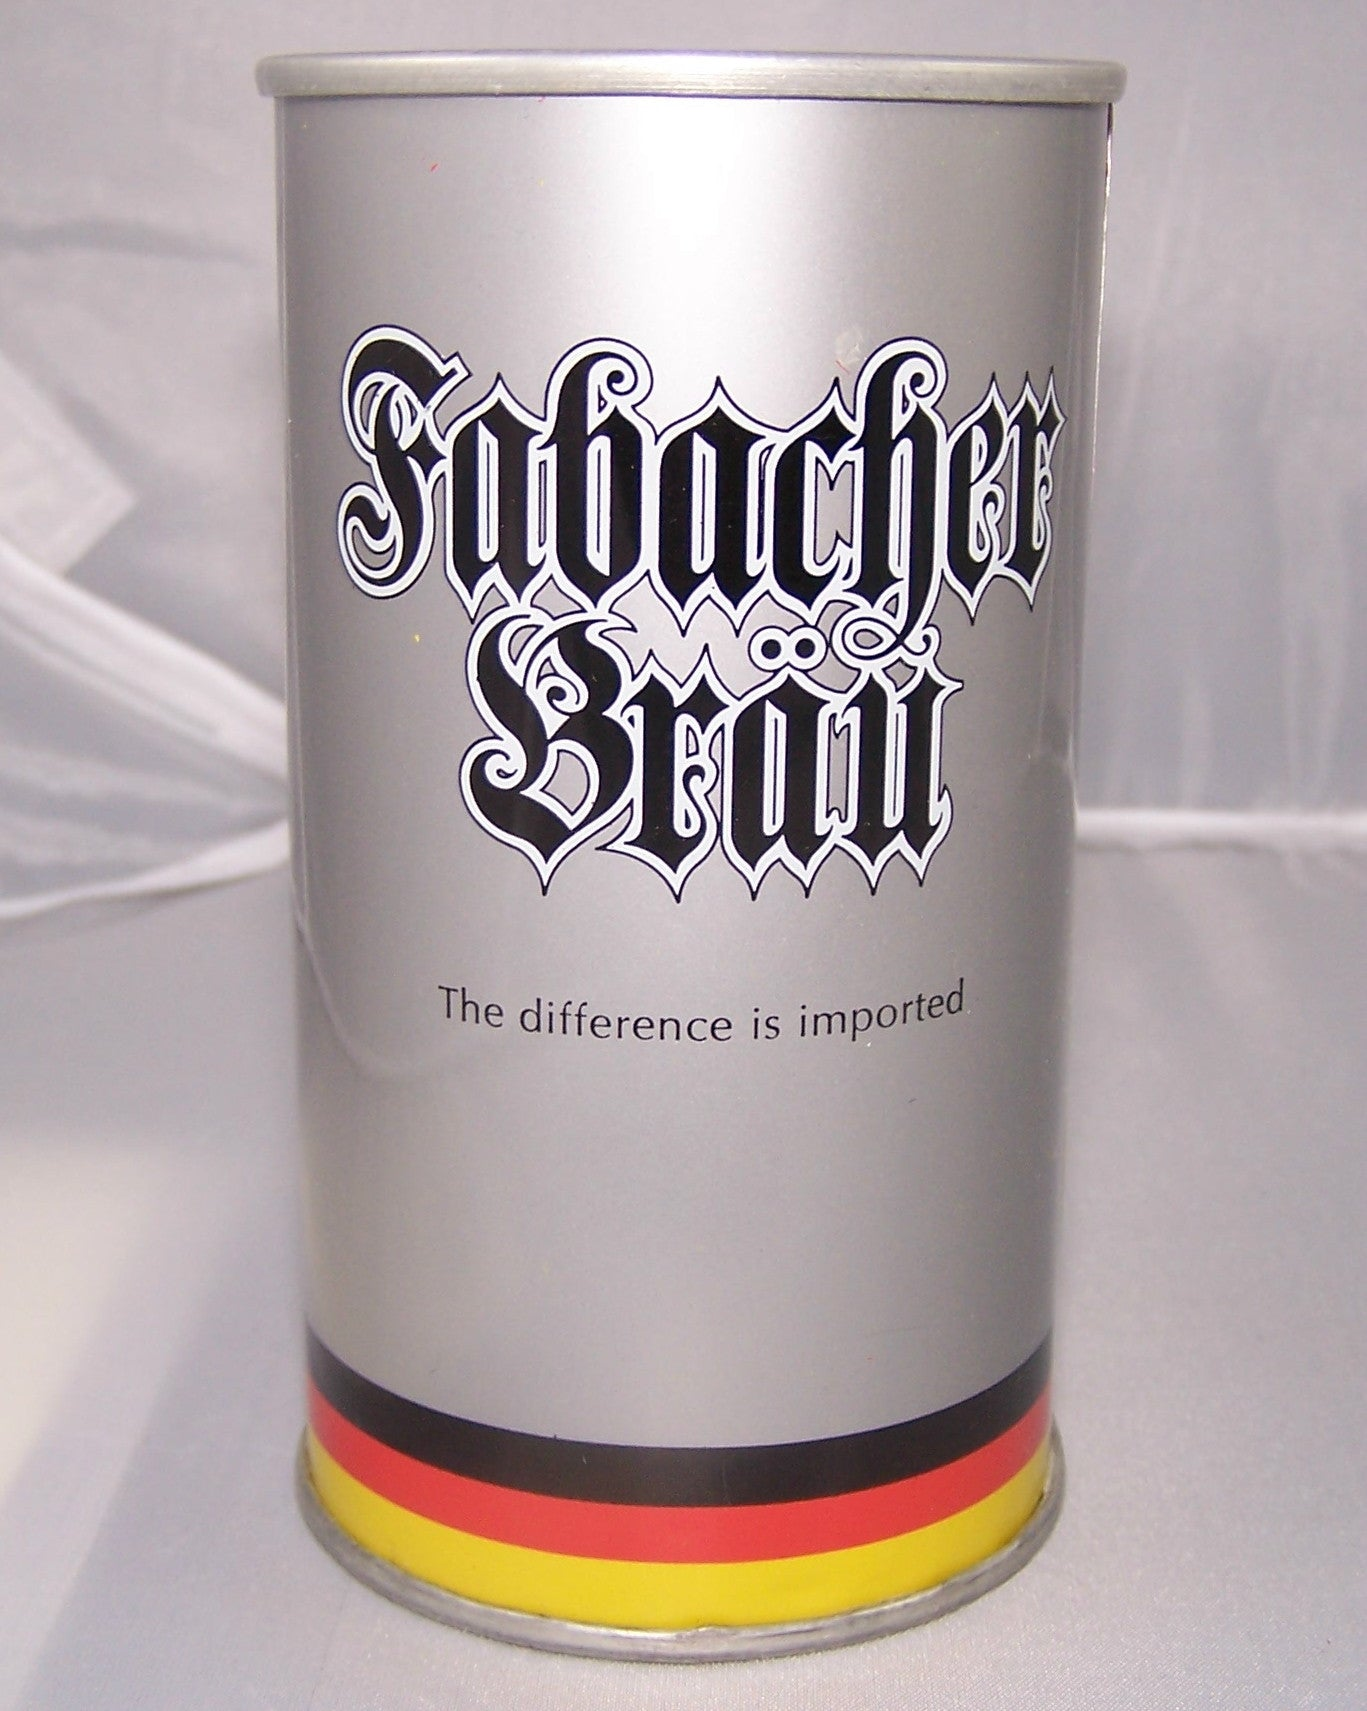 Fabacher Brau (Test Can) Not Listed, Grade A1+ Sold 4/9/16